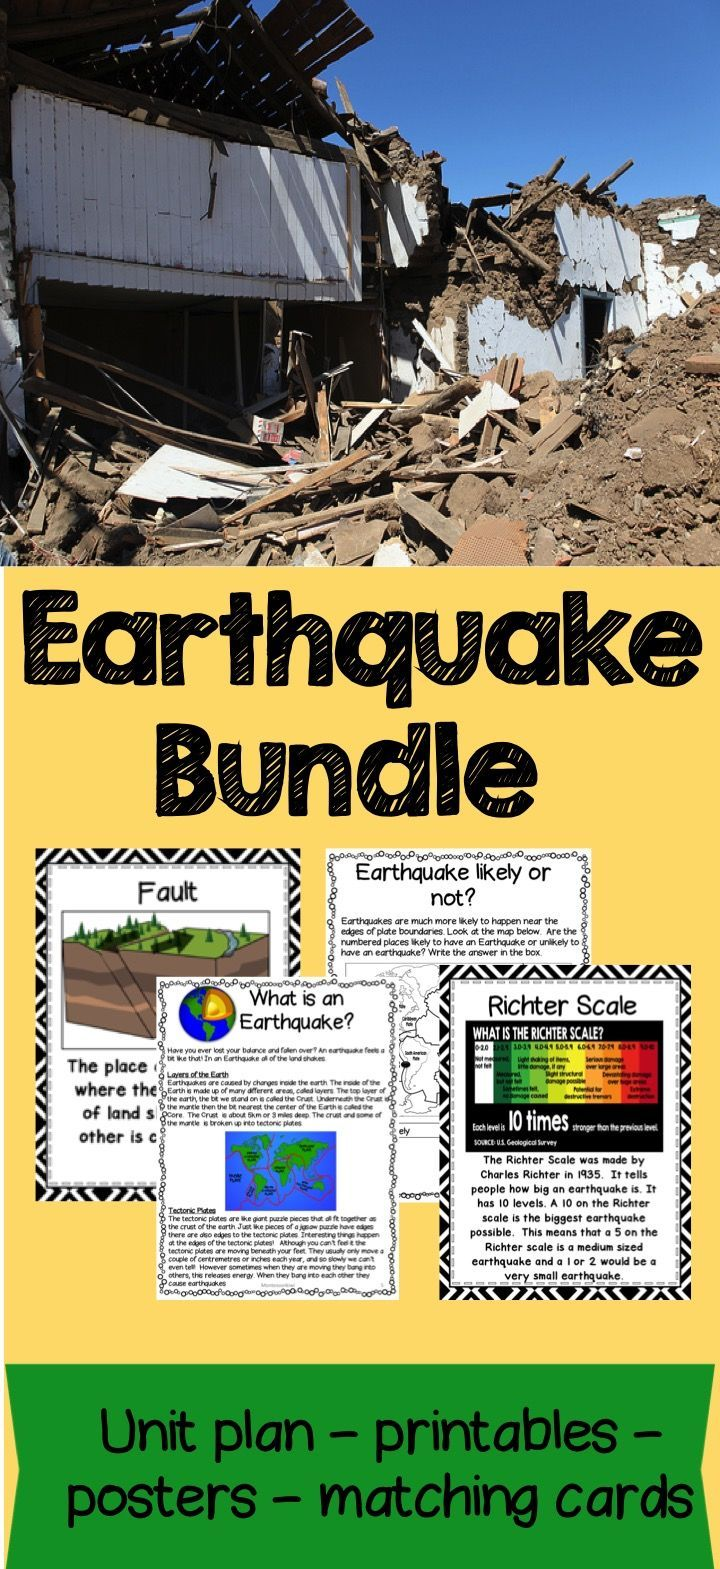 worksheet Free Printable Earthquake Worksheets earthquake bundle lesson plans activities worksheets teaching and printables 68 pages ready to use